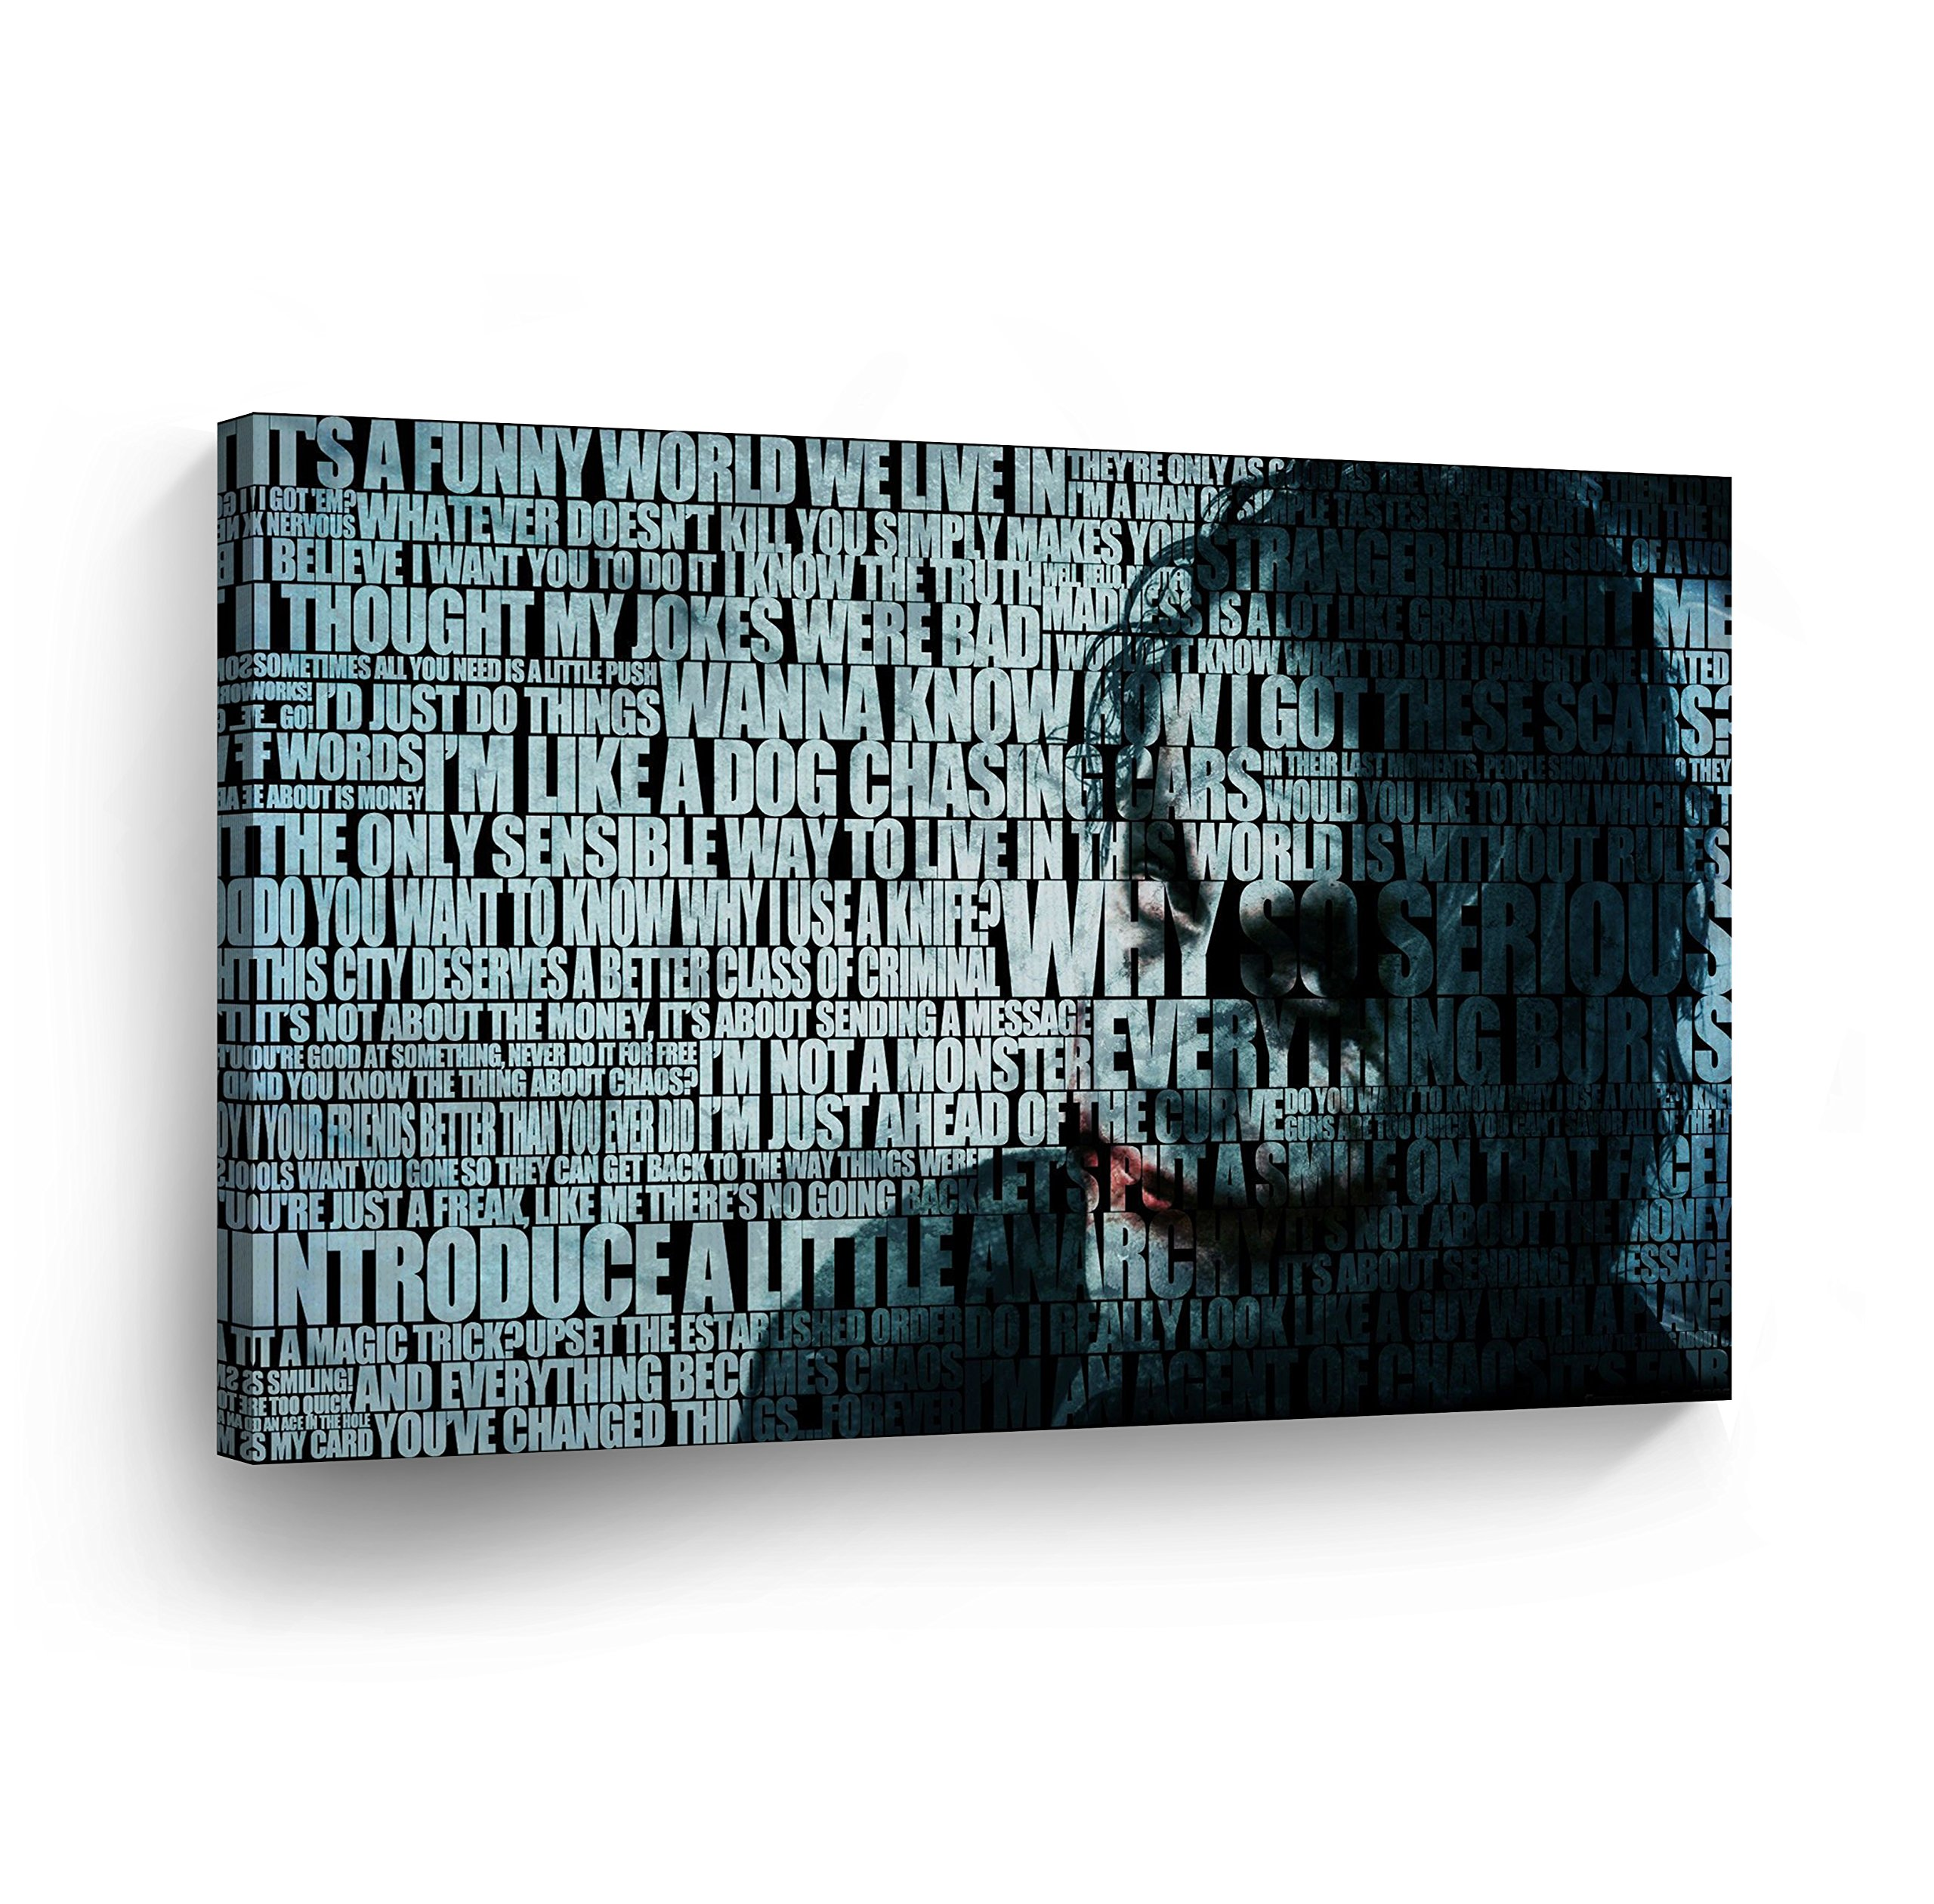 Joker Quotes Heath Ledger Decorative Art CANVAS PRINT Modern Wall Decor Artwork Wrapped Wood Stretcher Bars Vertical- Ready to Hang - %100 Handmade in the USA-JKH28